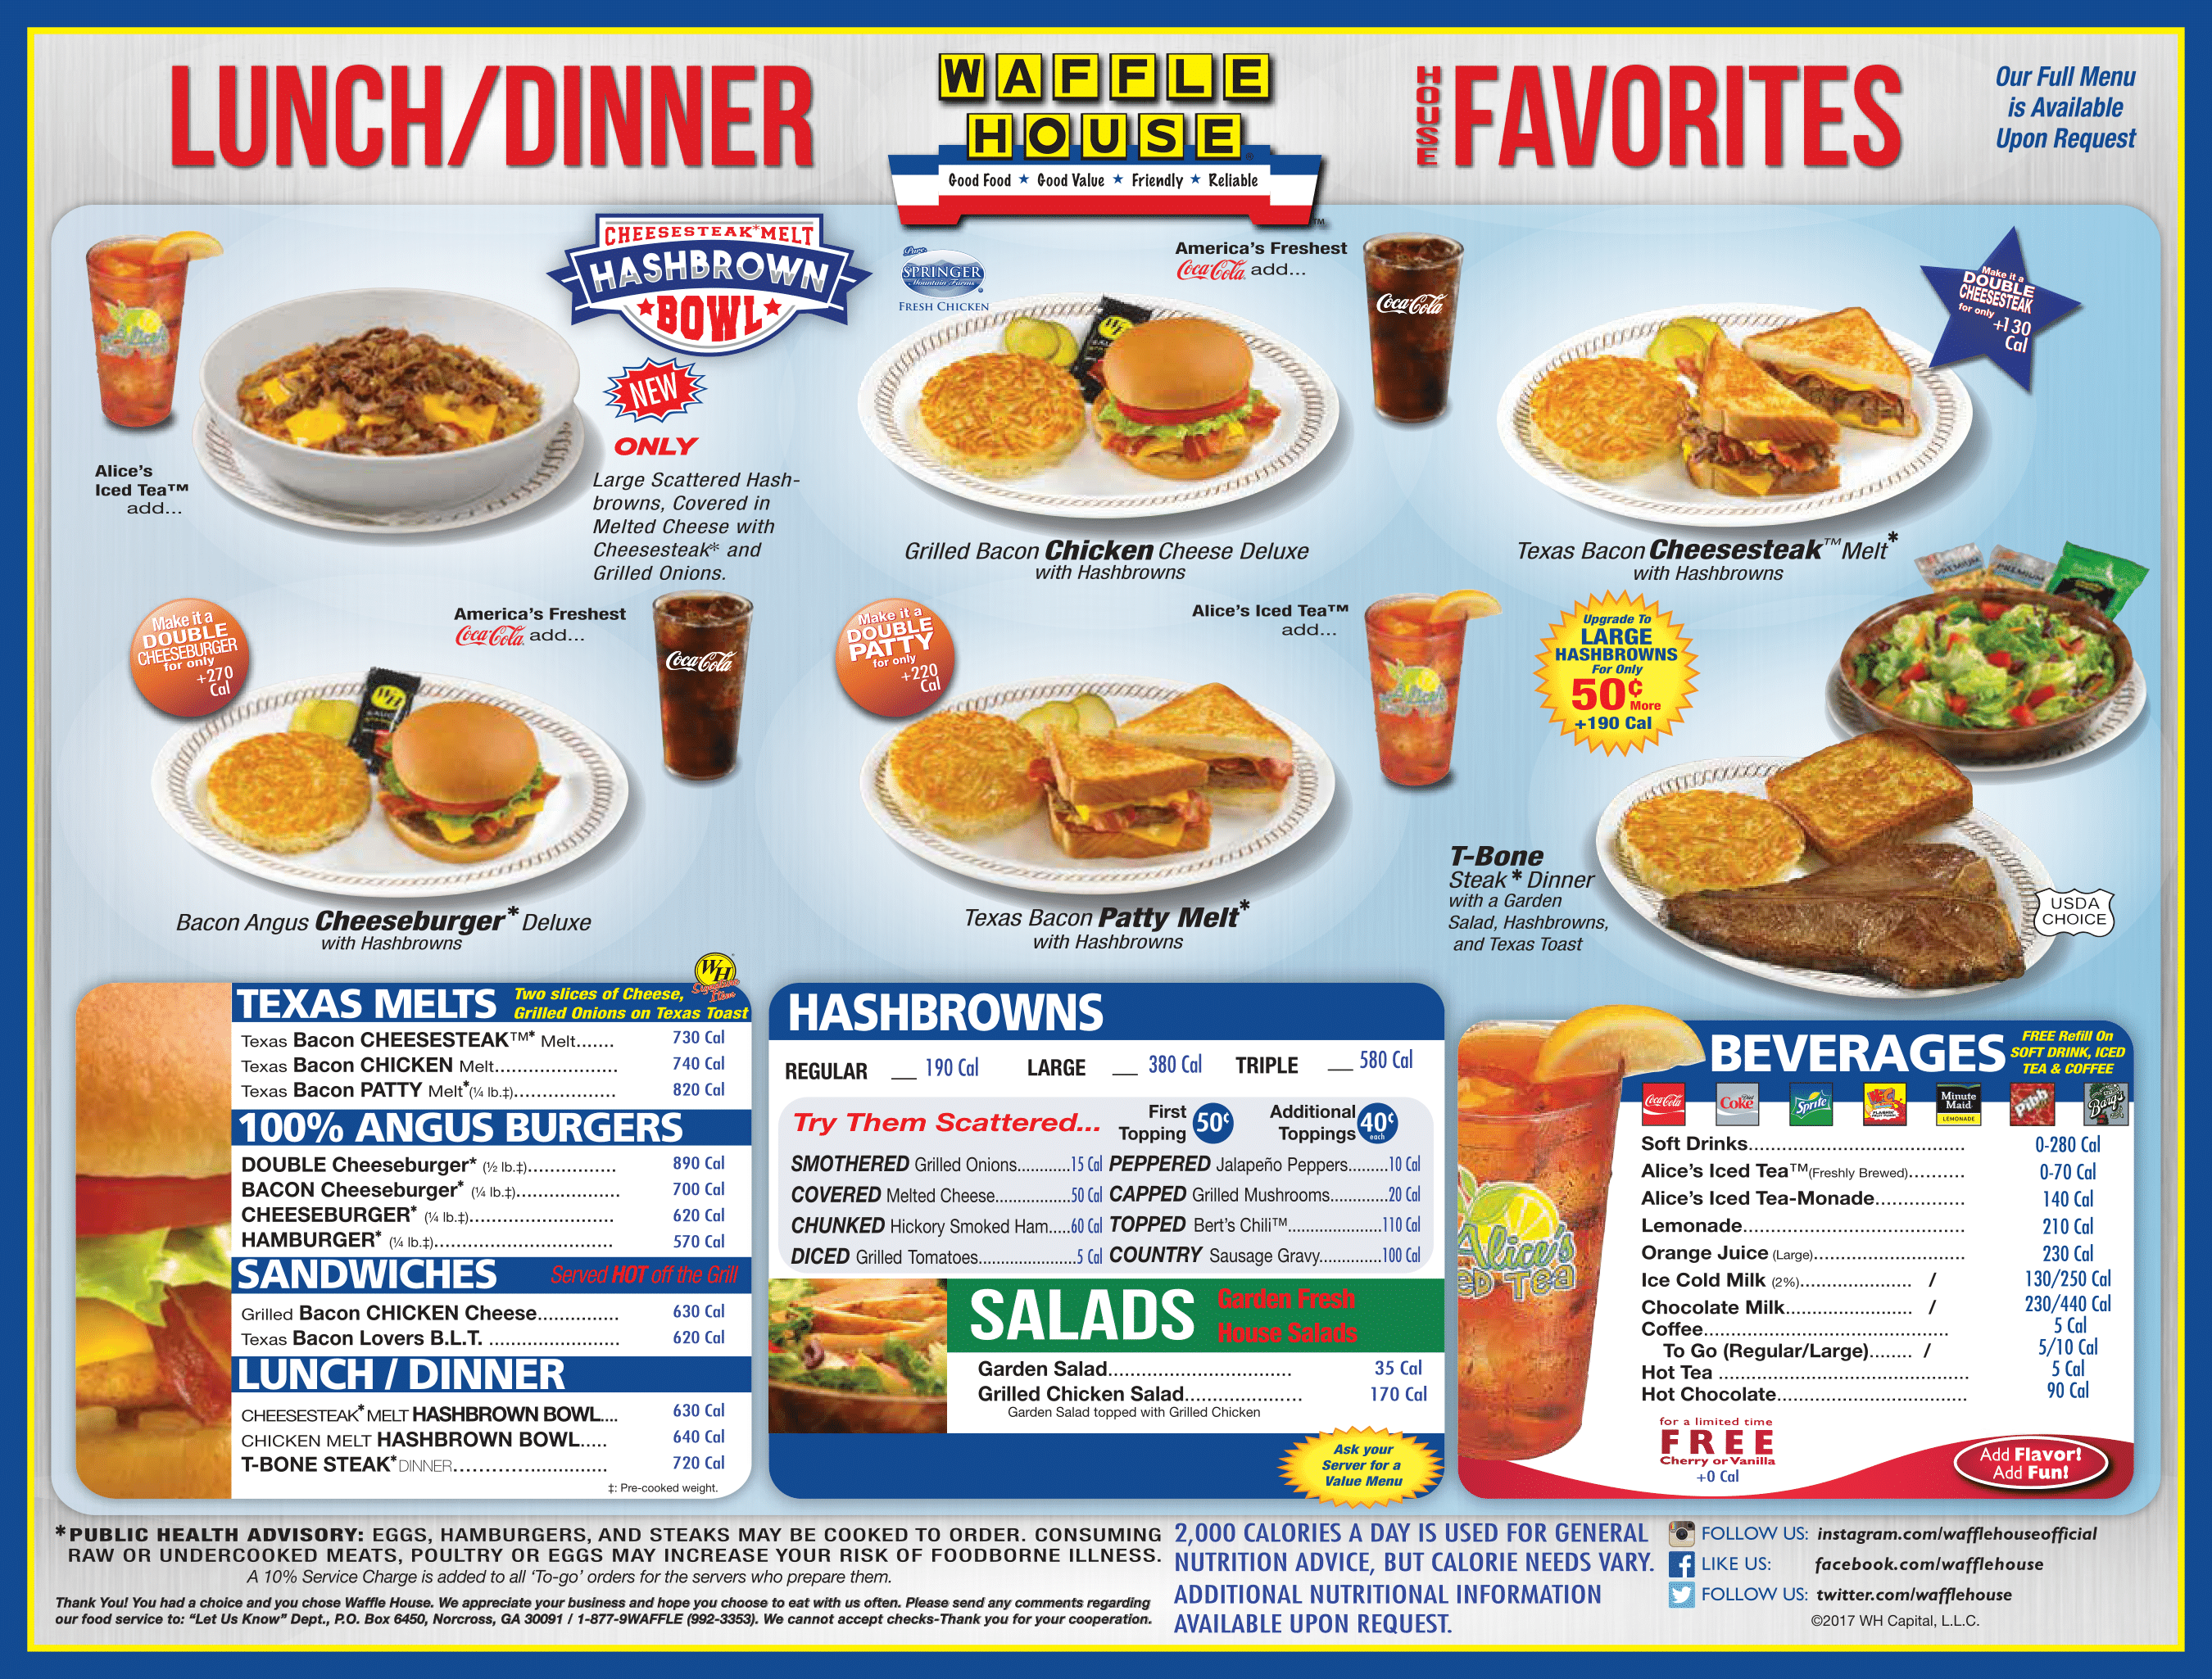 The Waffle House Menu Waffle House Menu Waffle House Bacon On The Grill